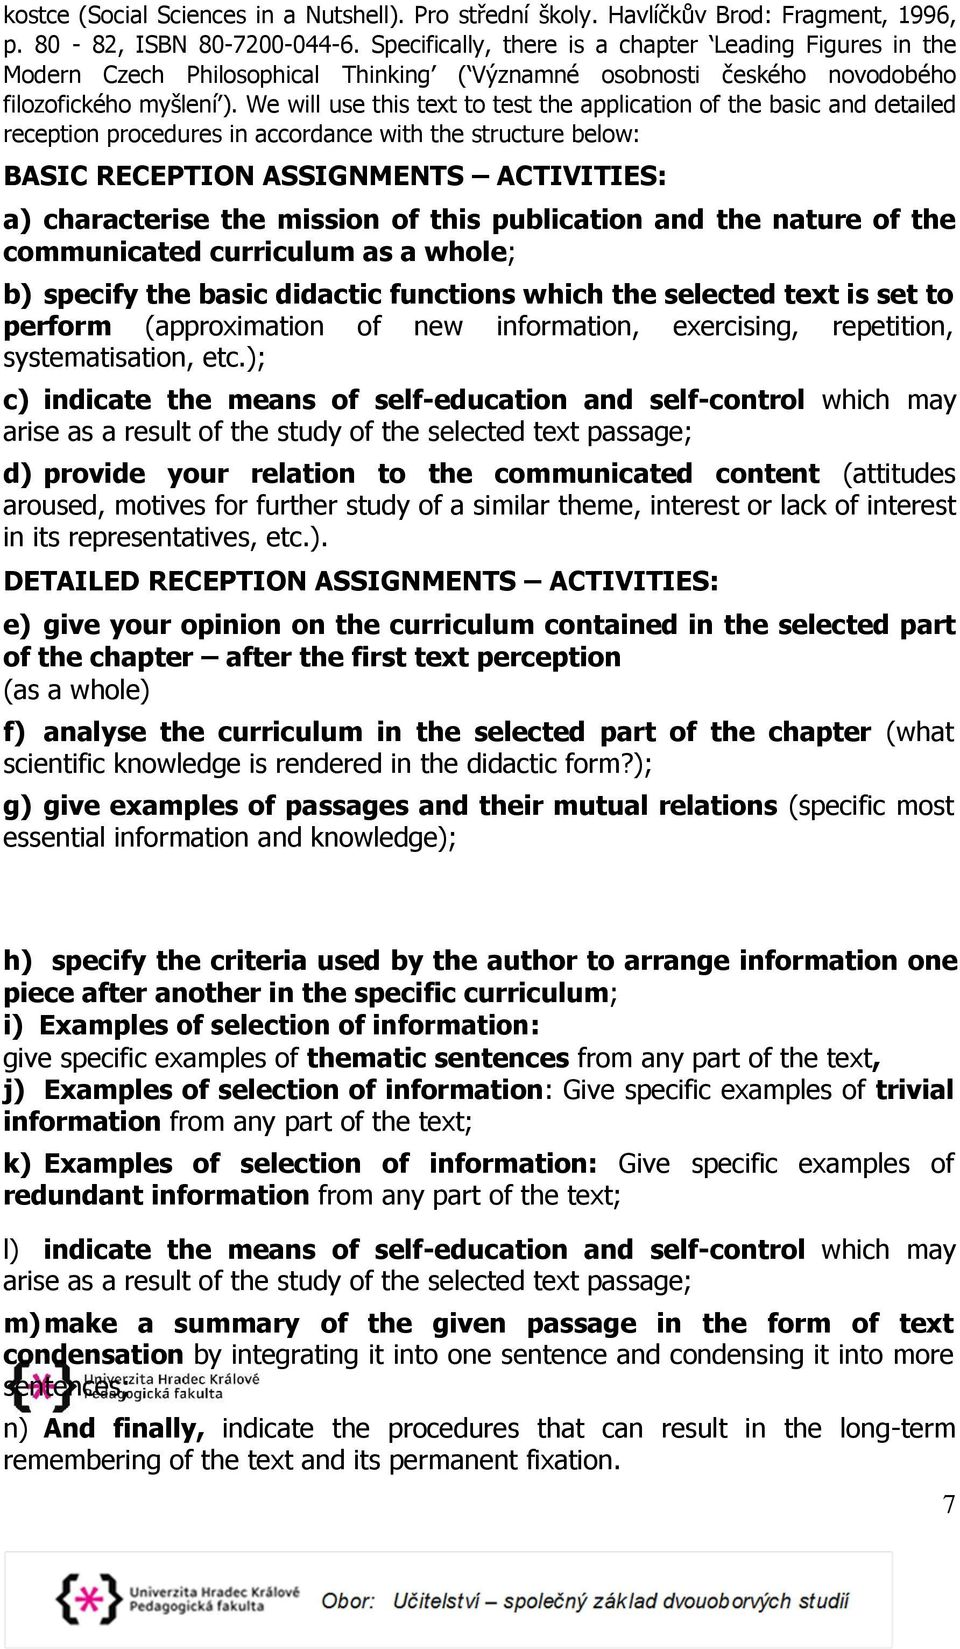 We will use this text to test the application of the basic and detailed reception procedures in accordance with the structure below: BASIC RECEPTION ASSIGNMENTS ACTIVITIES: a) characterise the